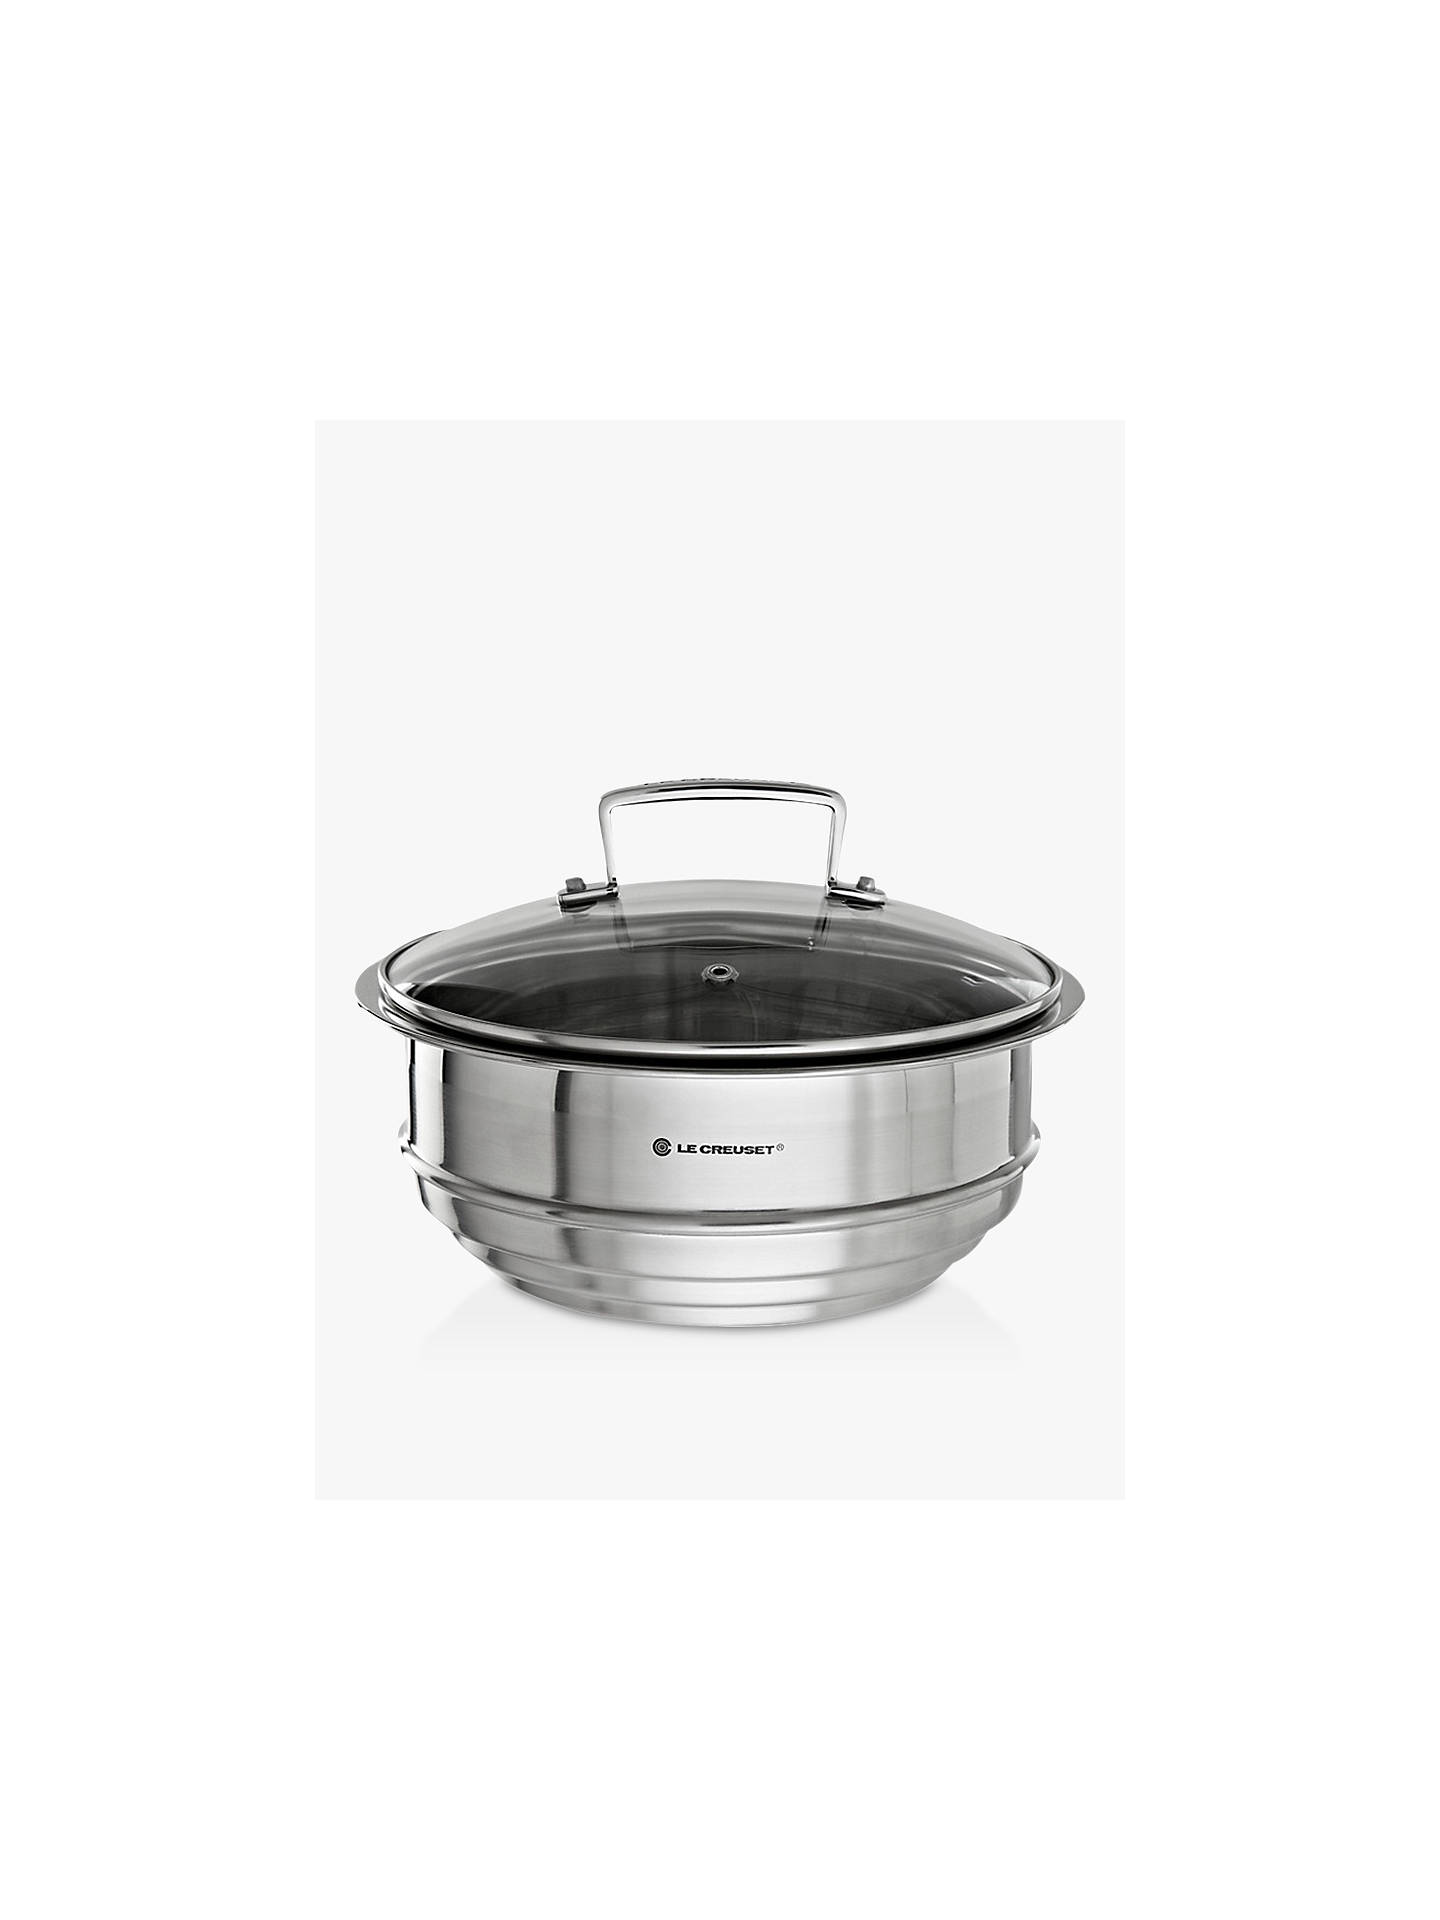 BuyLe Creuset 3-Ply Stainless Steel Multi-Steamer with Glass Lid Online at johnlewis.com